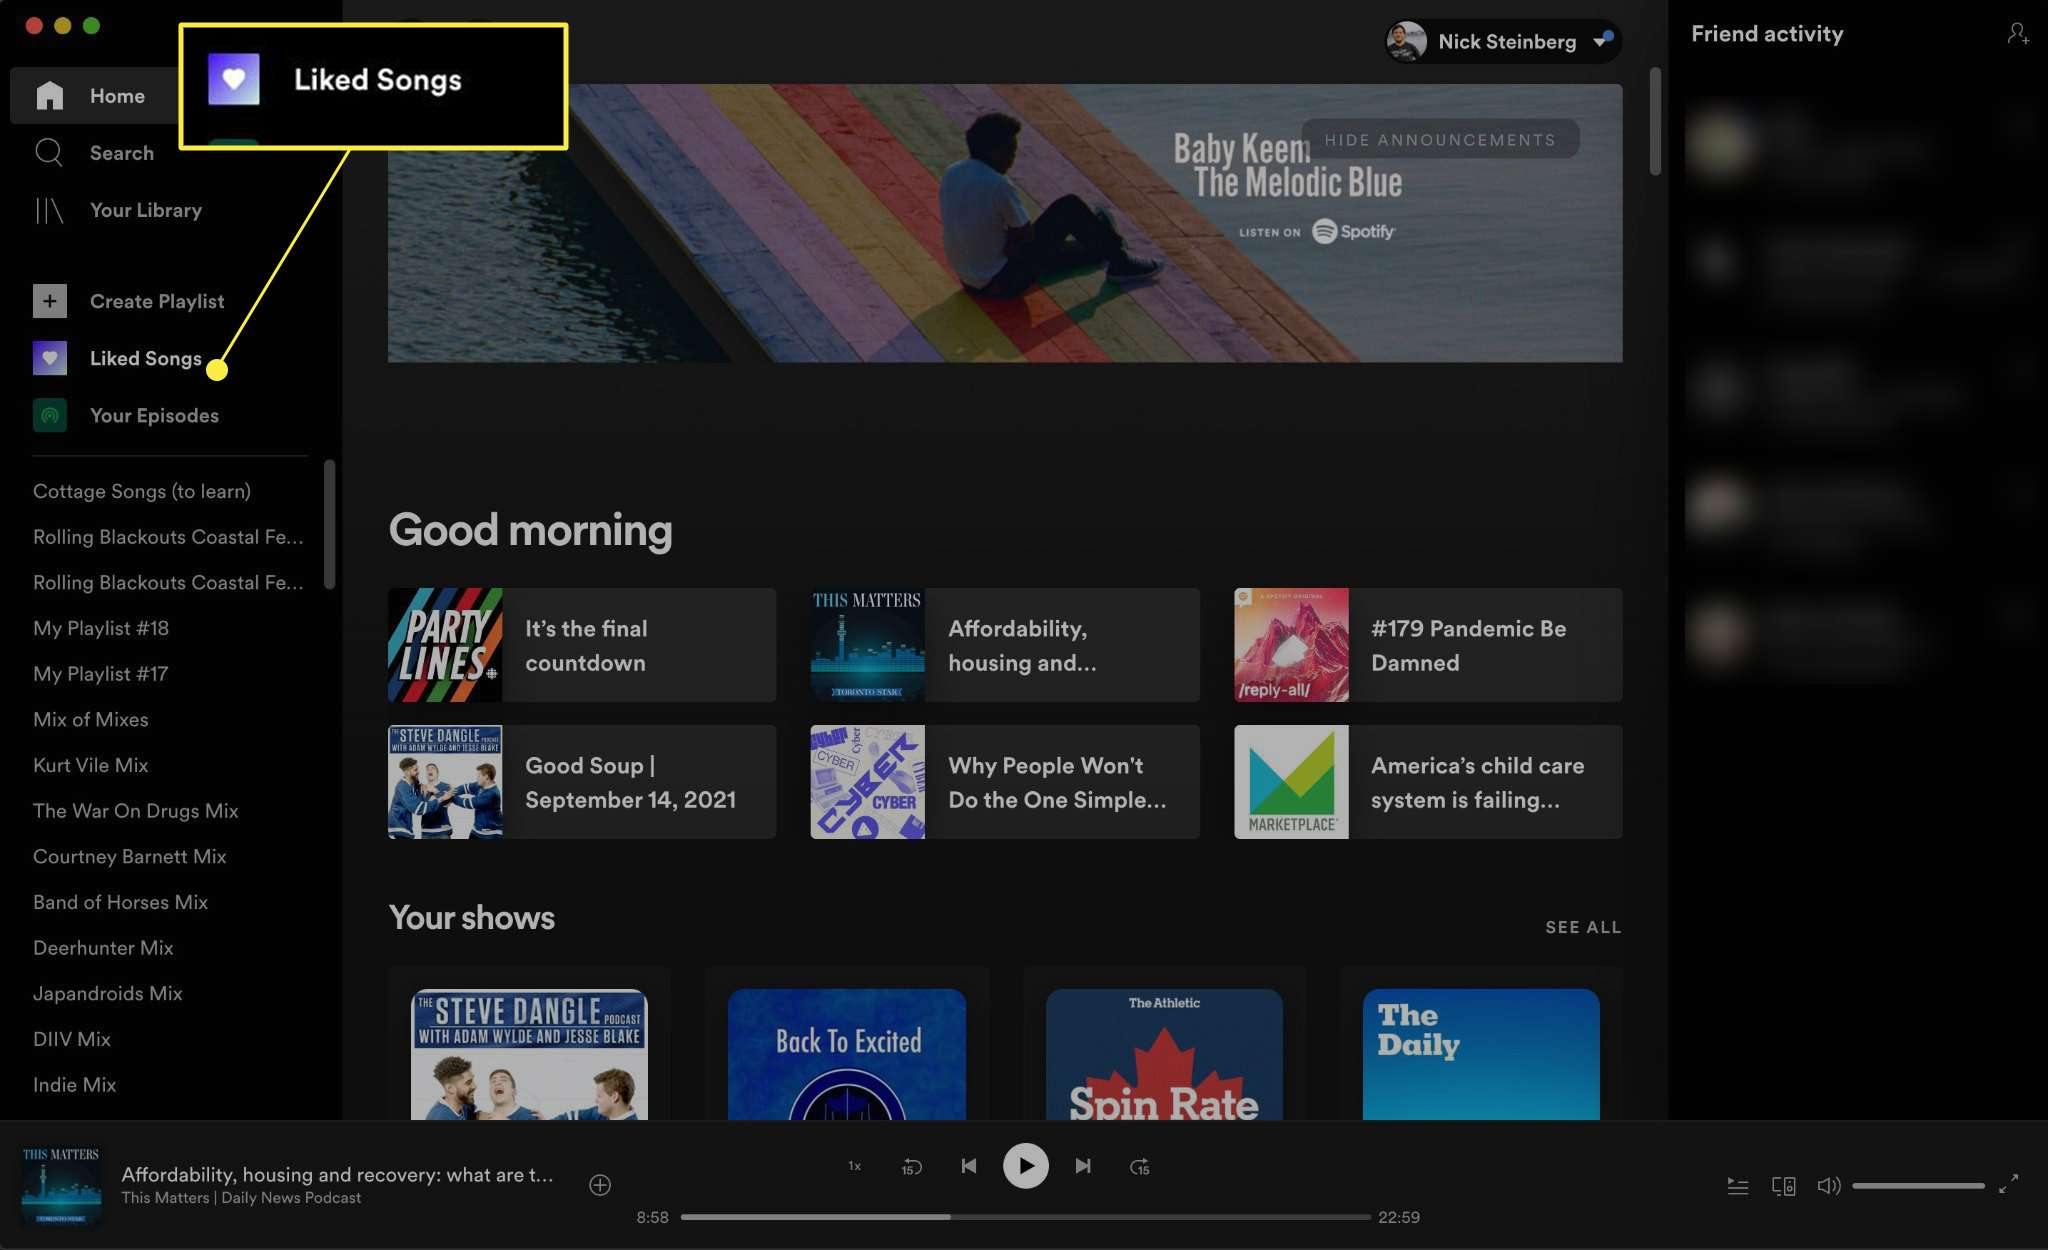 Navigating to Liked Songs from the home menu on Spotify Mac app.